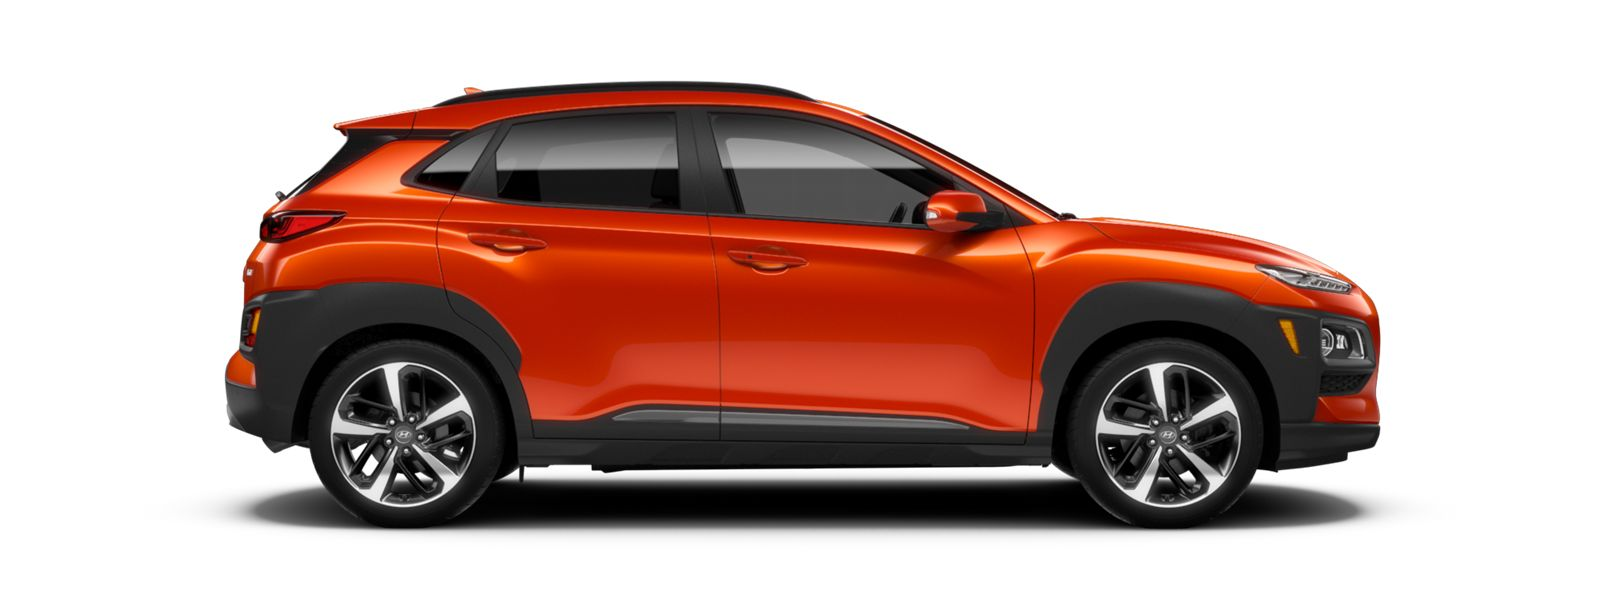 2020 Kona Ultimate profile placeholder for trim selection